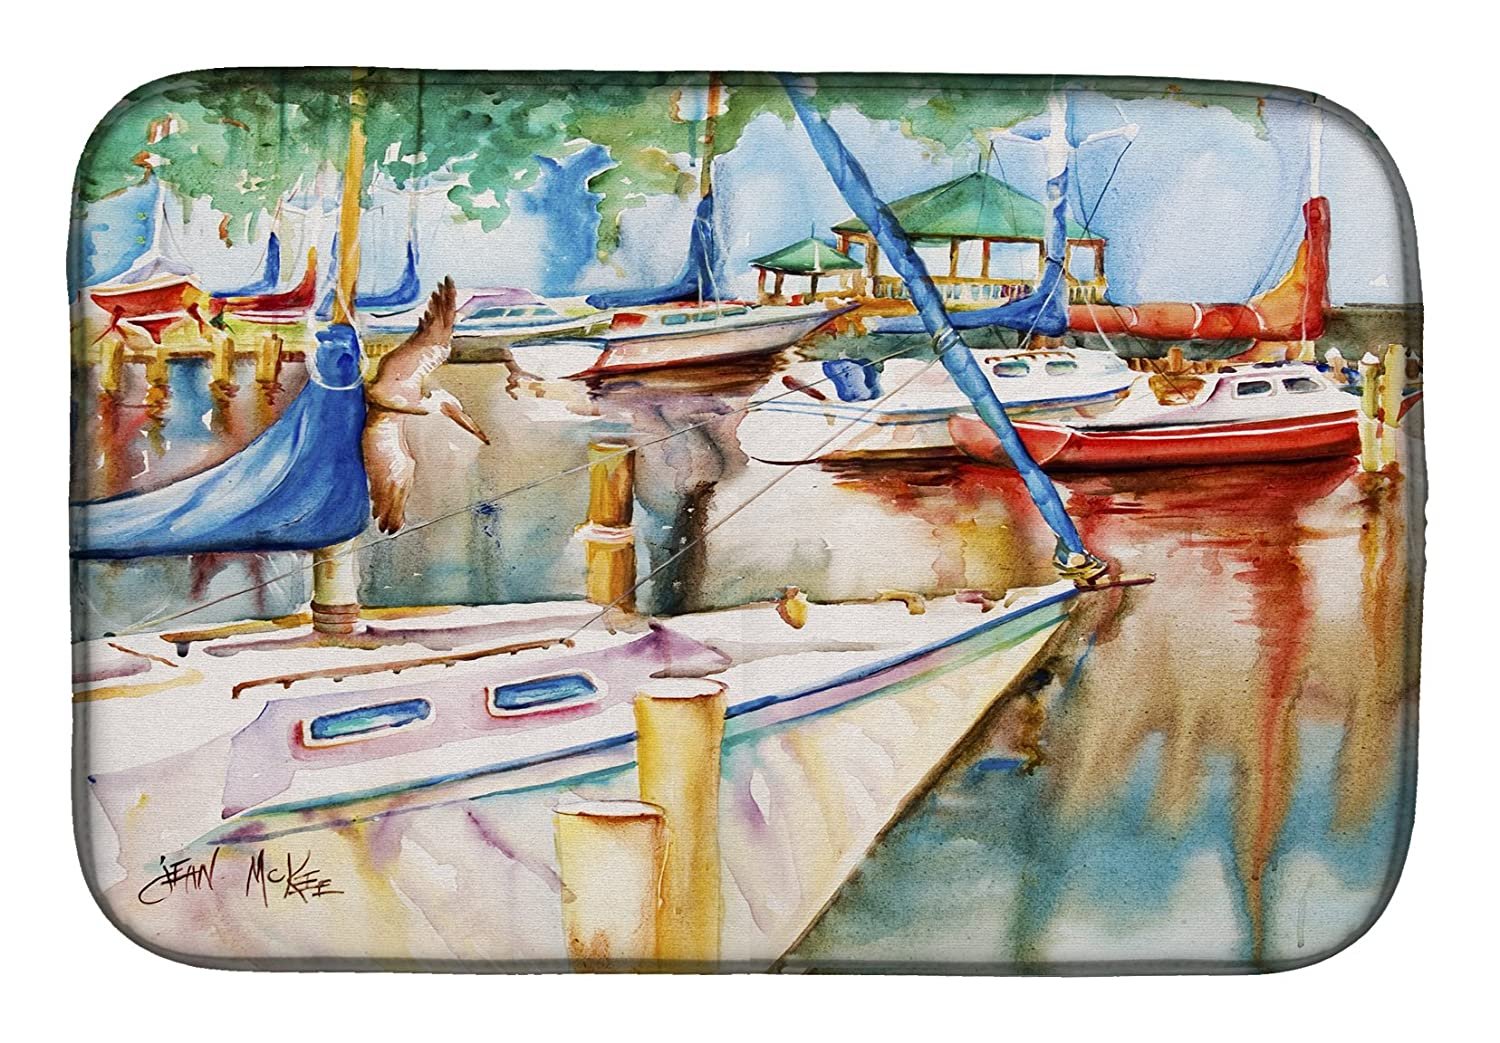 Caroline 's Treasures jmk1043ddm Sailboats At The Gazeboディッシュ乾燥マット、14 x 21、マルチカラー   B07BQBFXXT